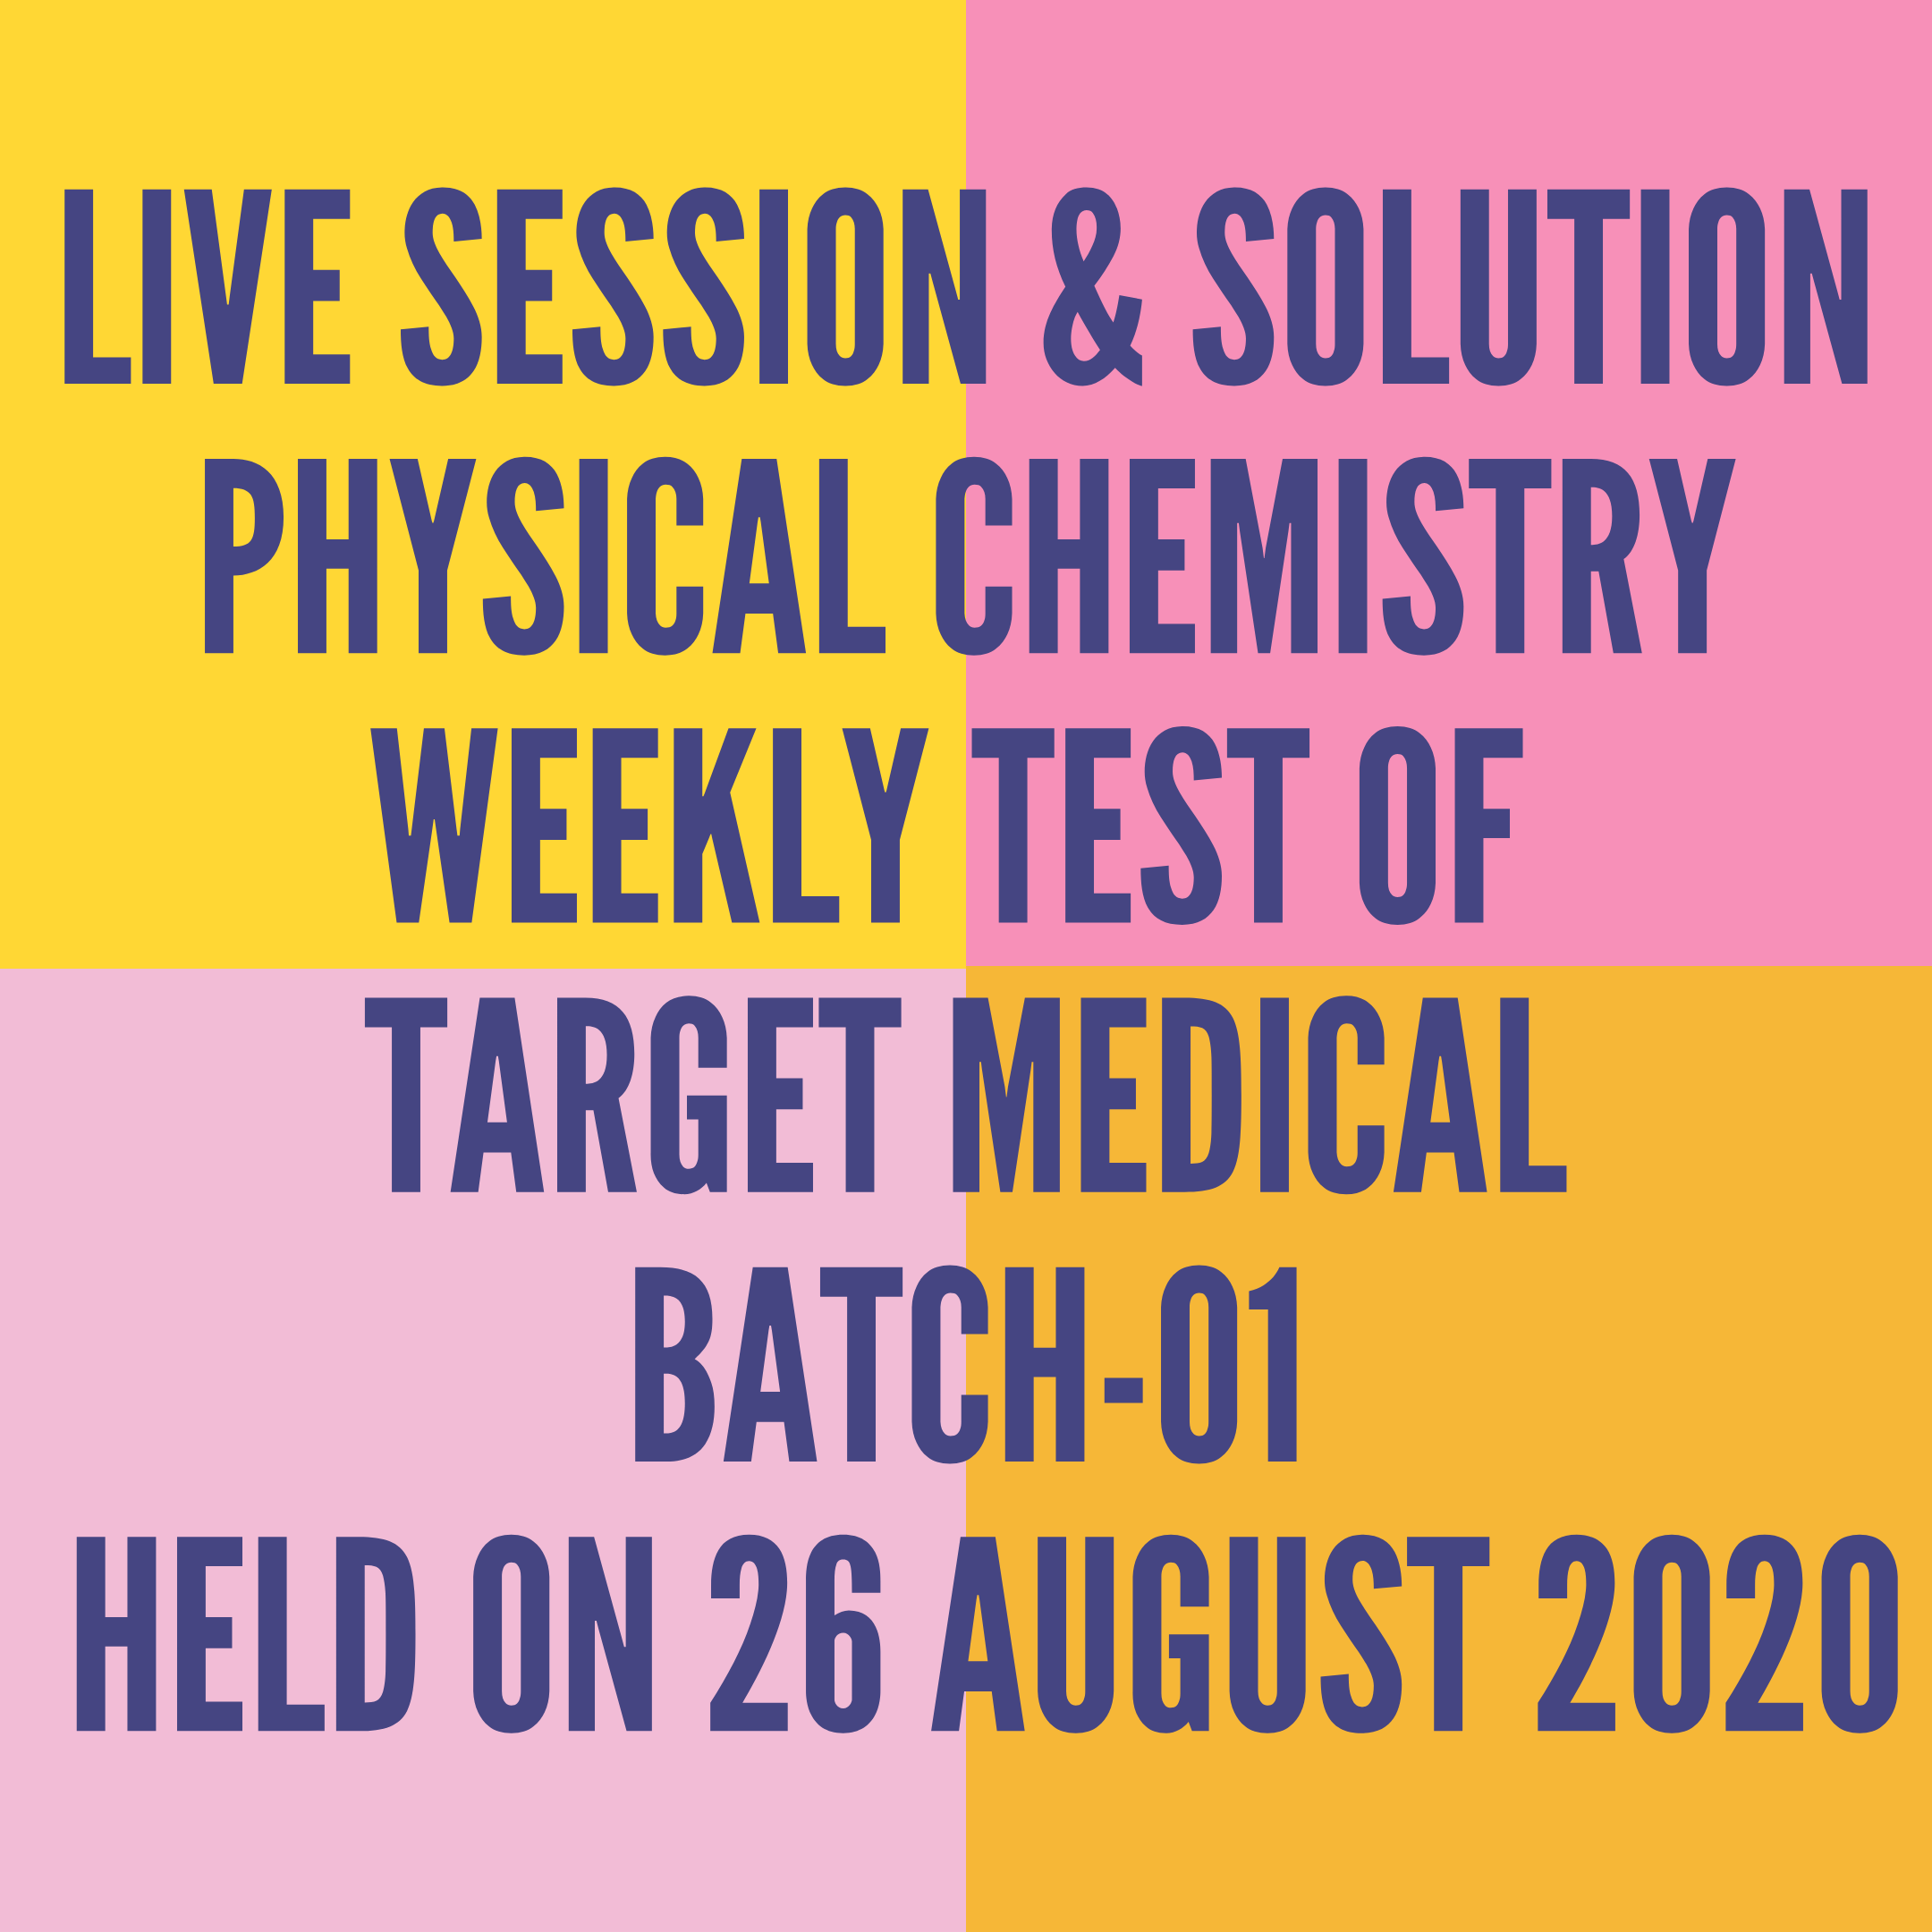 LIVE SESSION & SOLUTION PHYSICAL CHEMISTRY WEEKLY TEST OF TARGET MEDICAL BATCH-01  HELD ON 26 AUGUST 2020